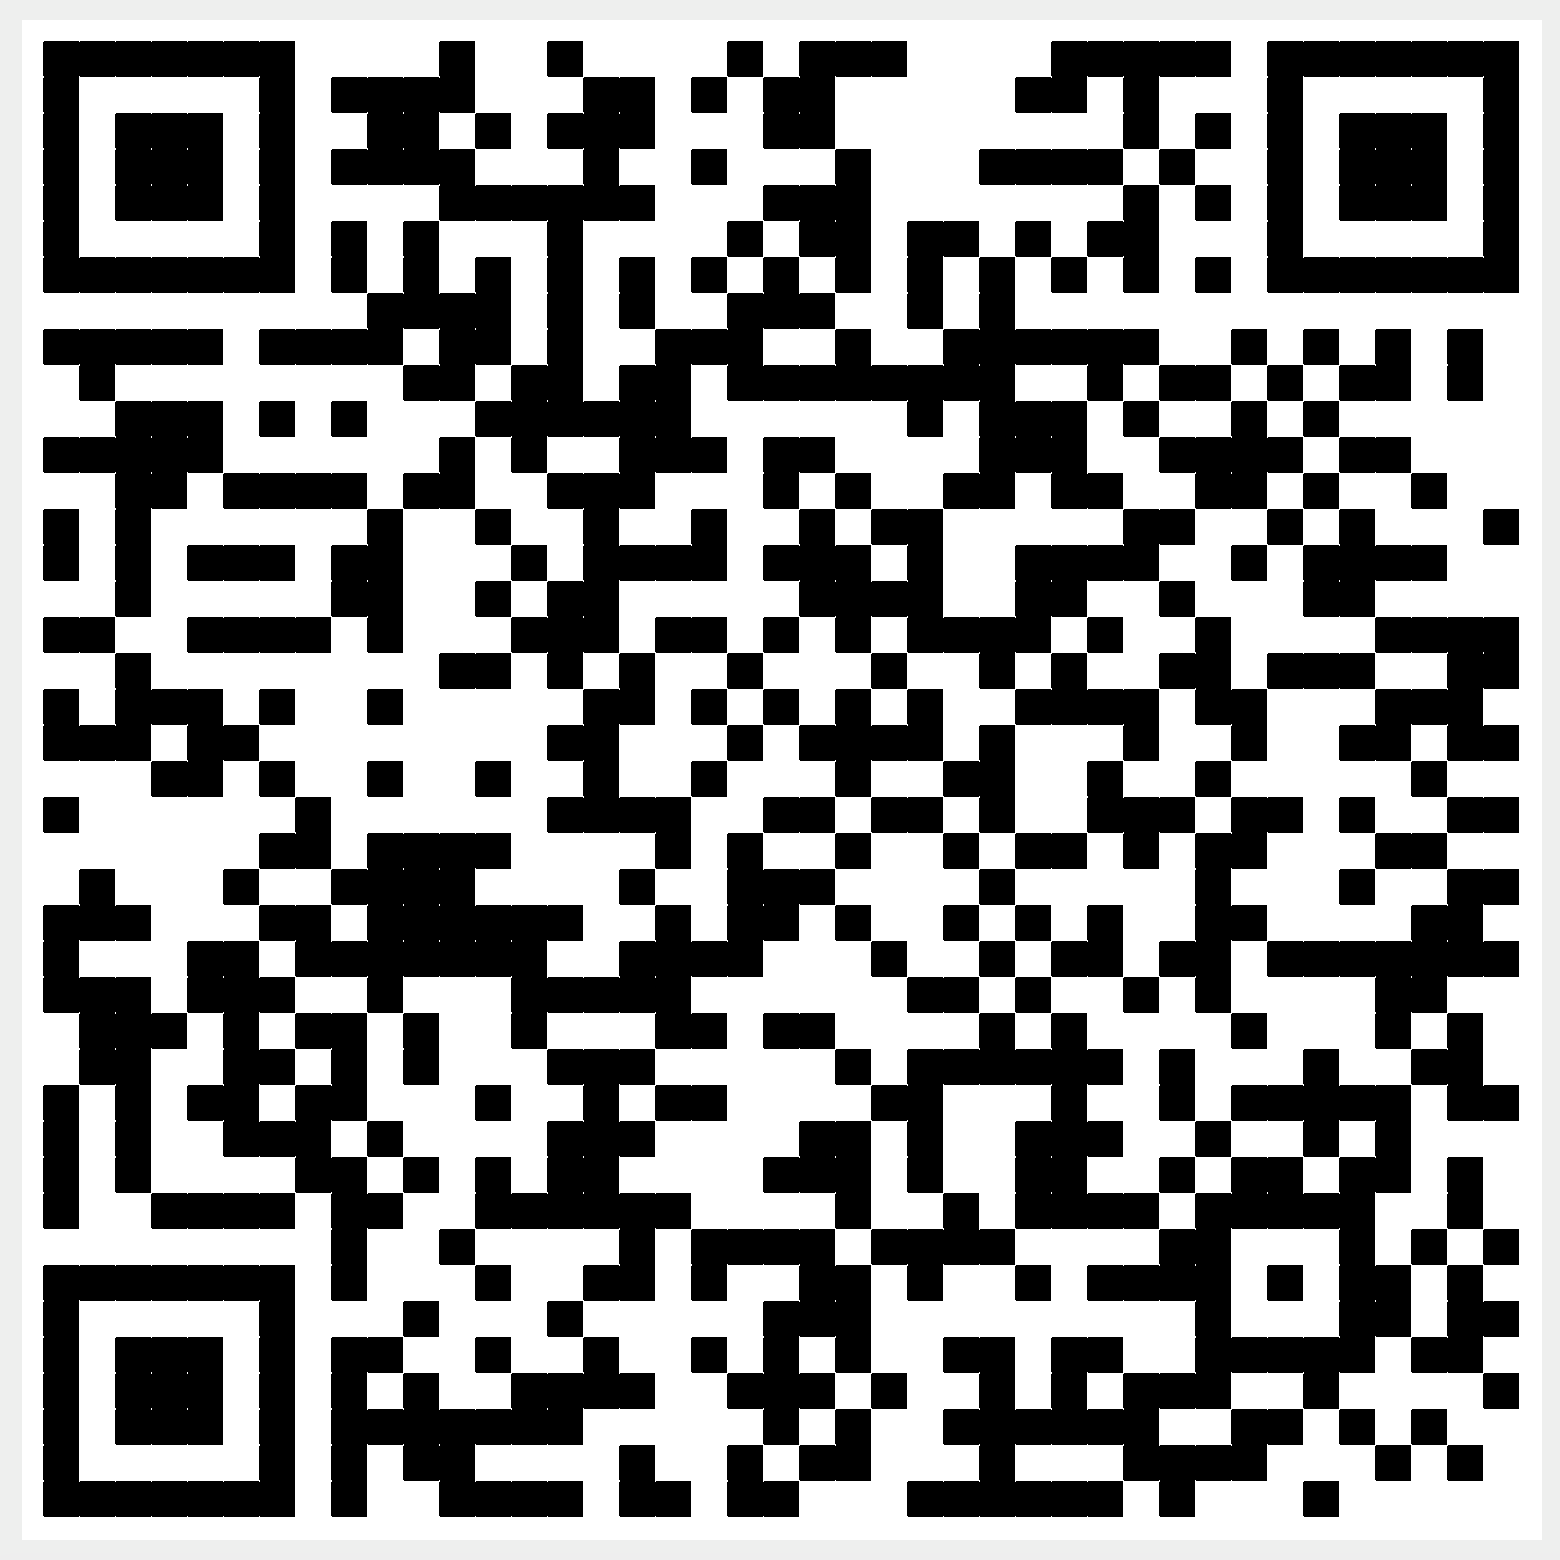 Spende via Bitcoin - Scanne den QR-Code